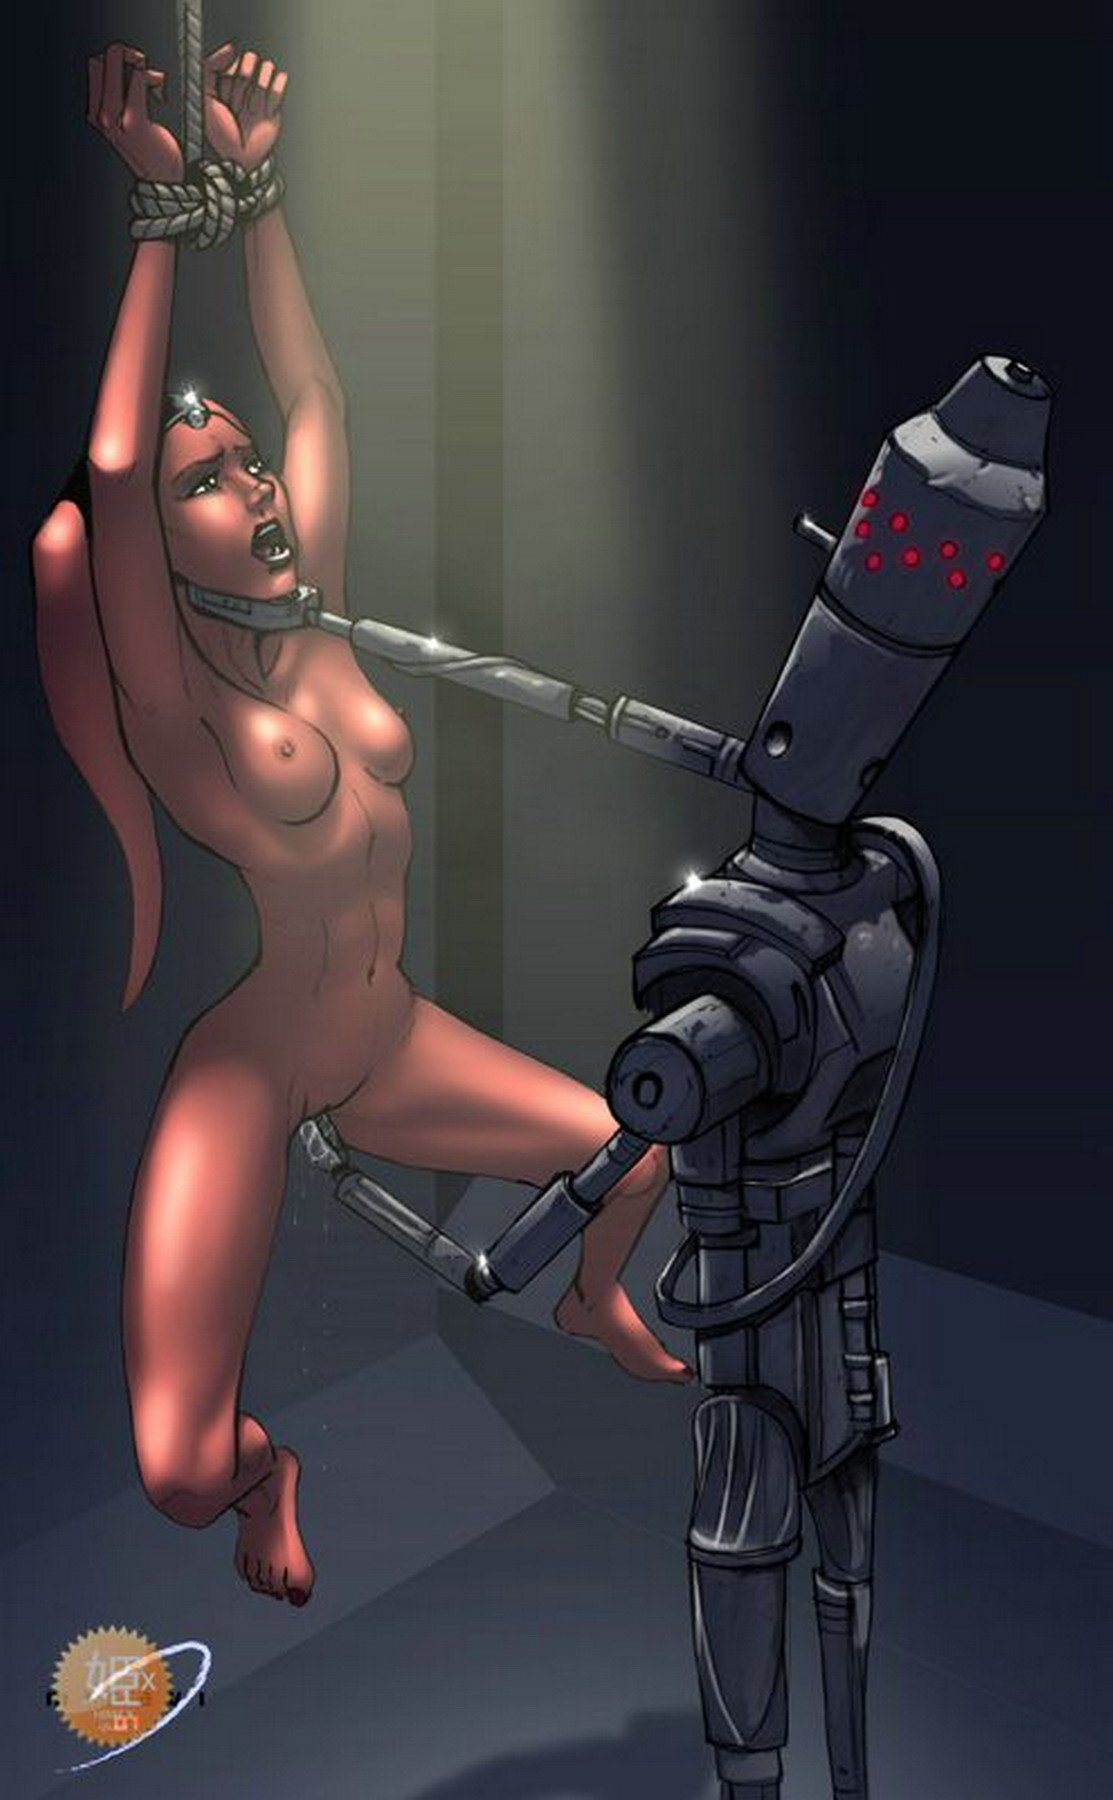 Star wars fingering porn naked videos